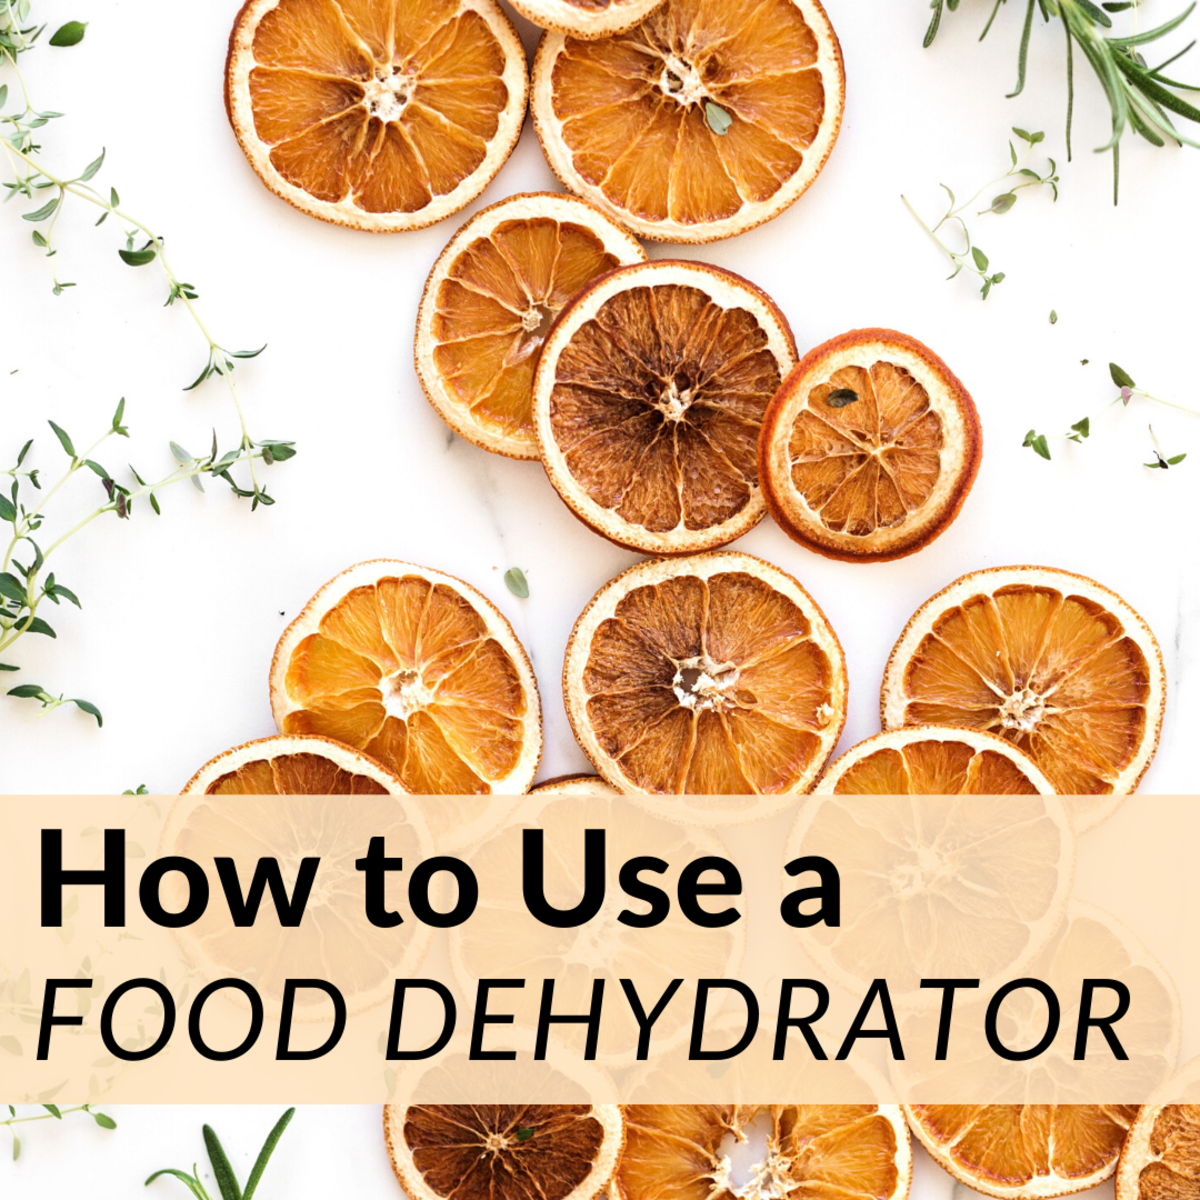 How to Dehydrate Your Own Food